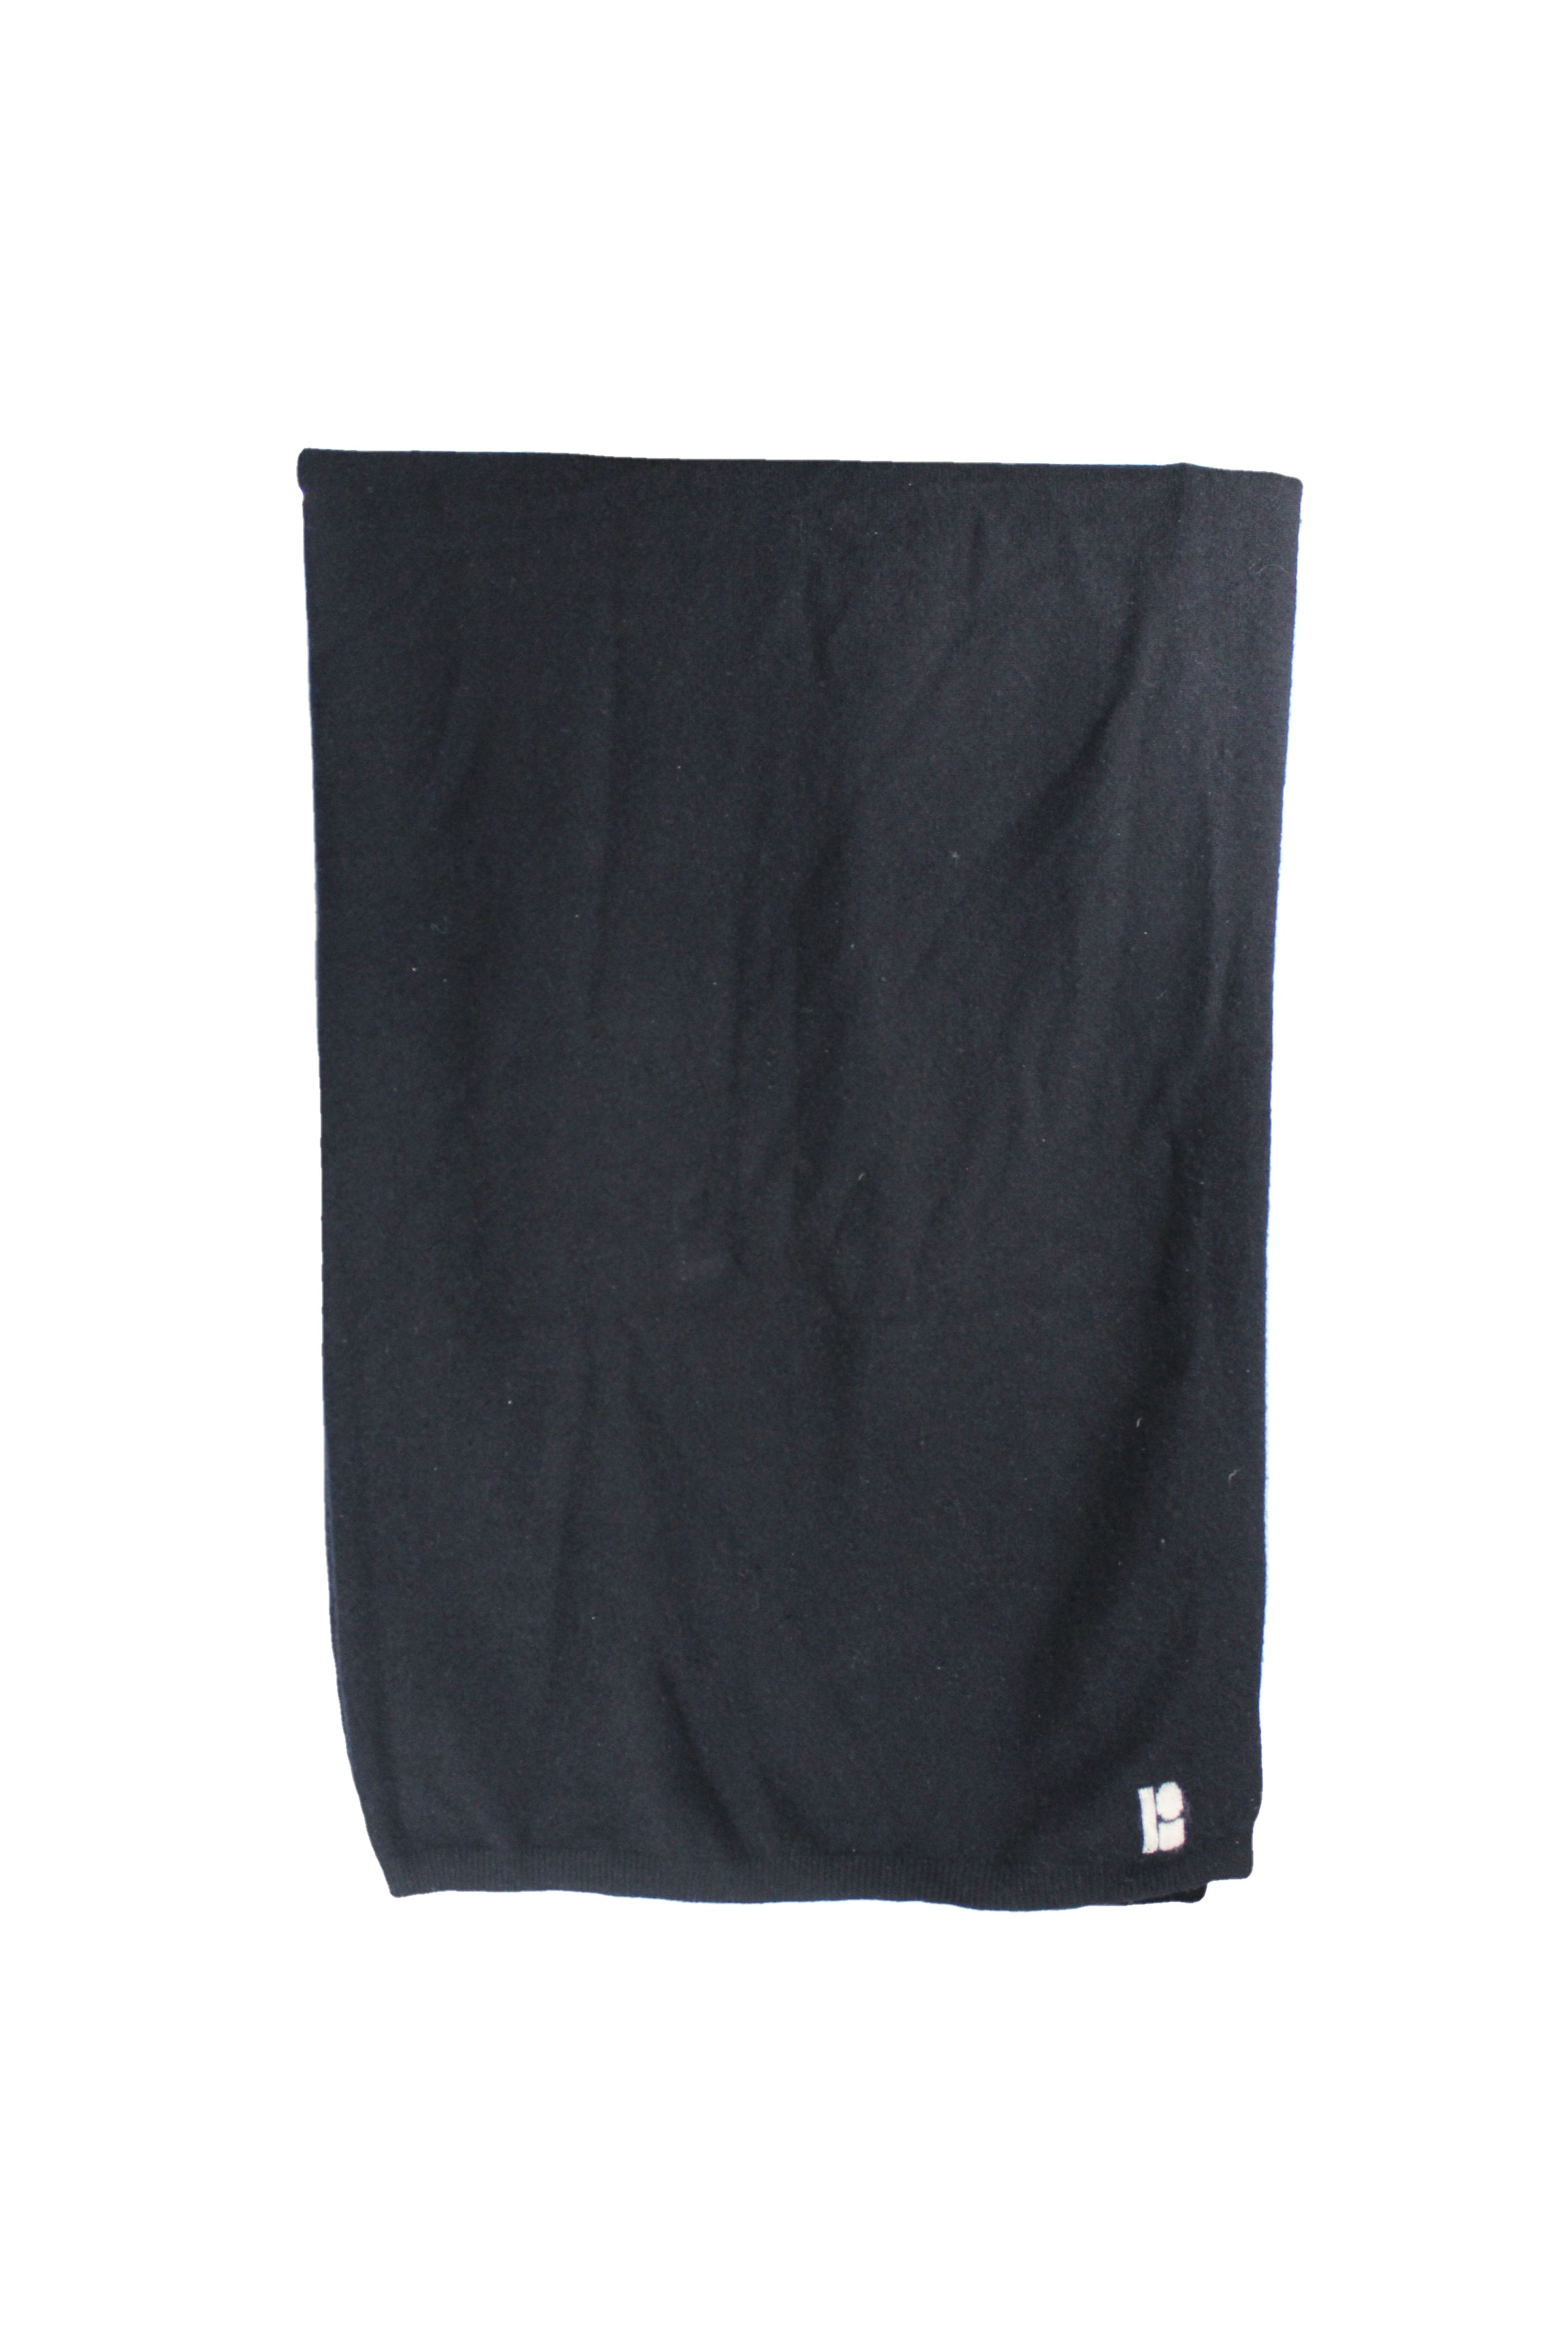 unlabeled black rectangle scarf.